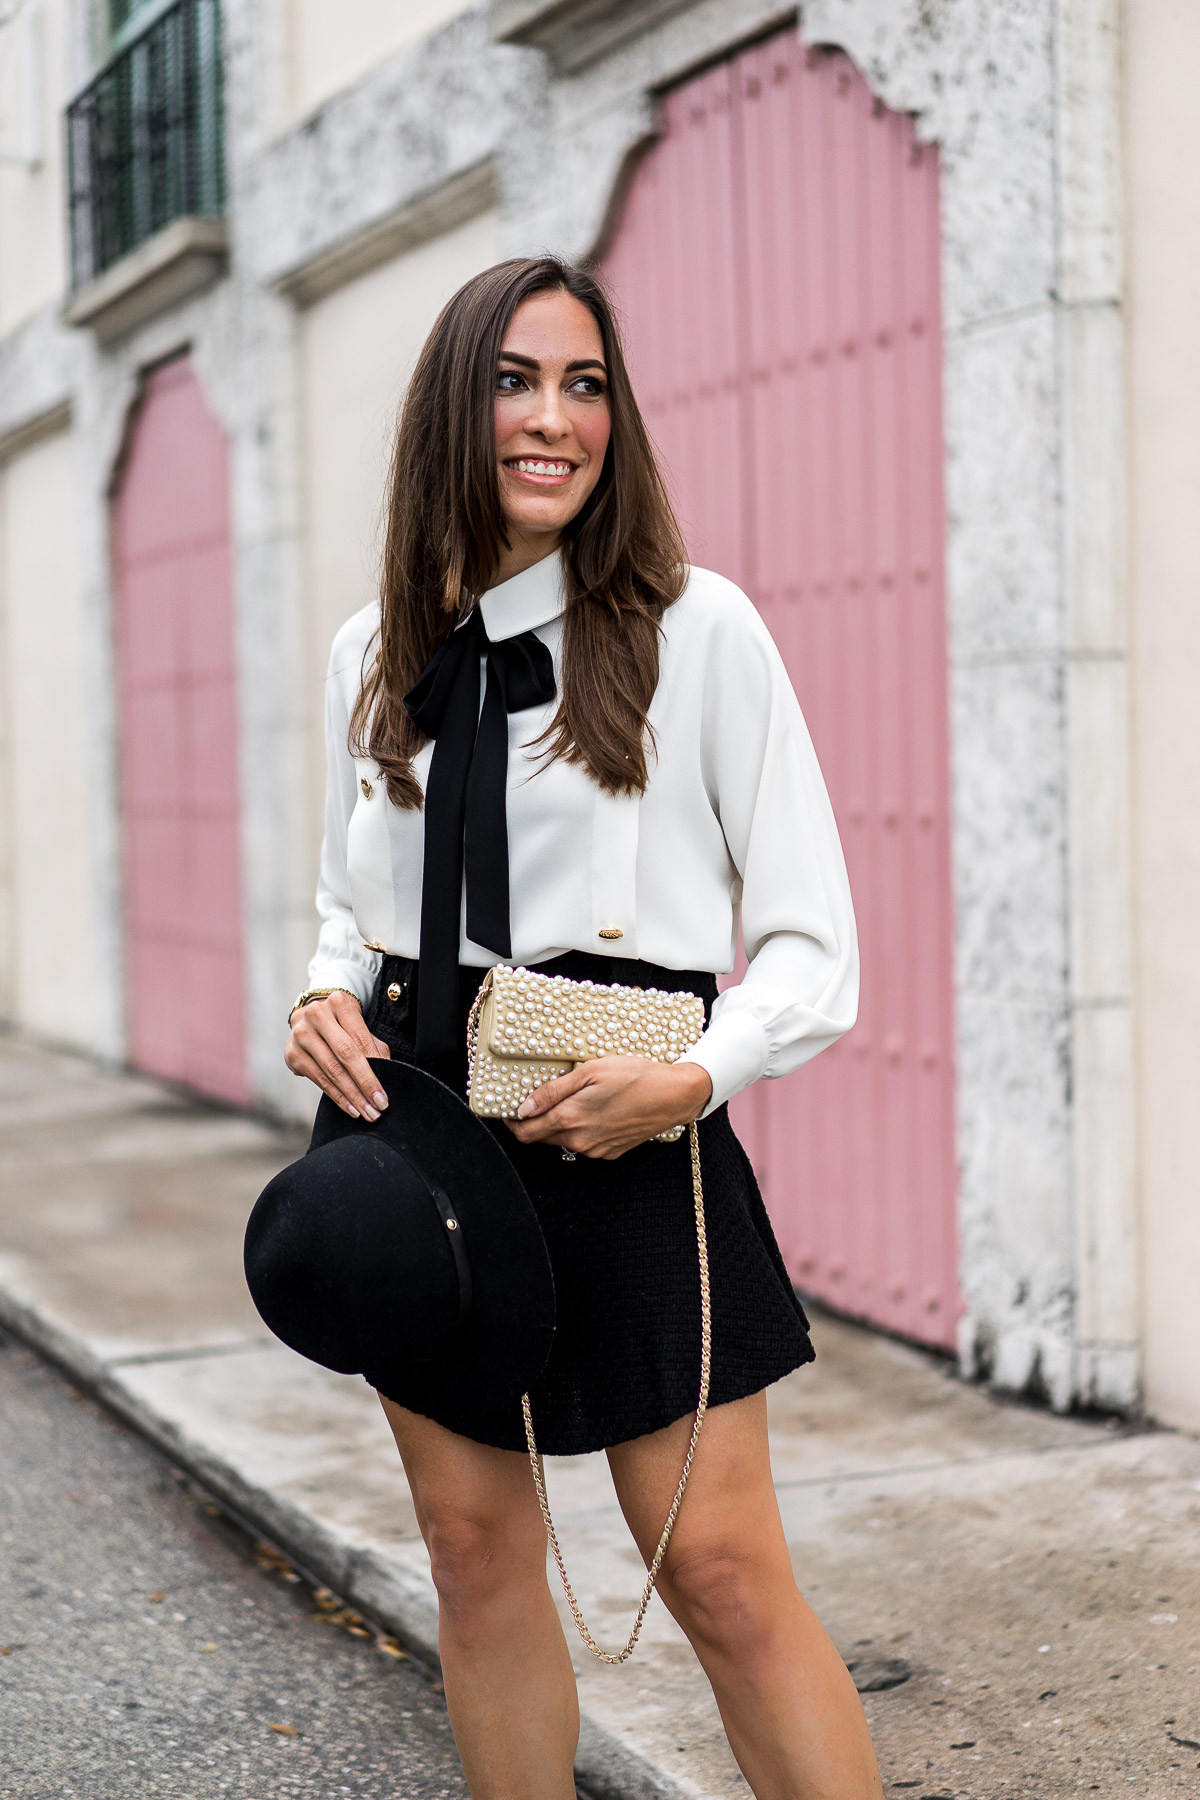 Storets tweed skirt styled by Amanda of A Glam Lifestyle blog with her Chanel pearl bag and Rag and Bone fedora